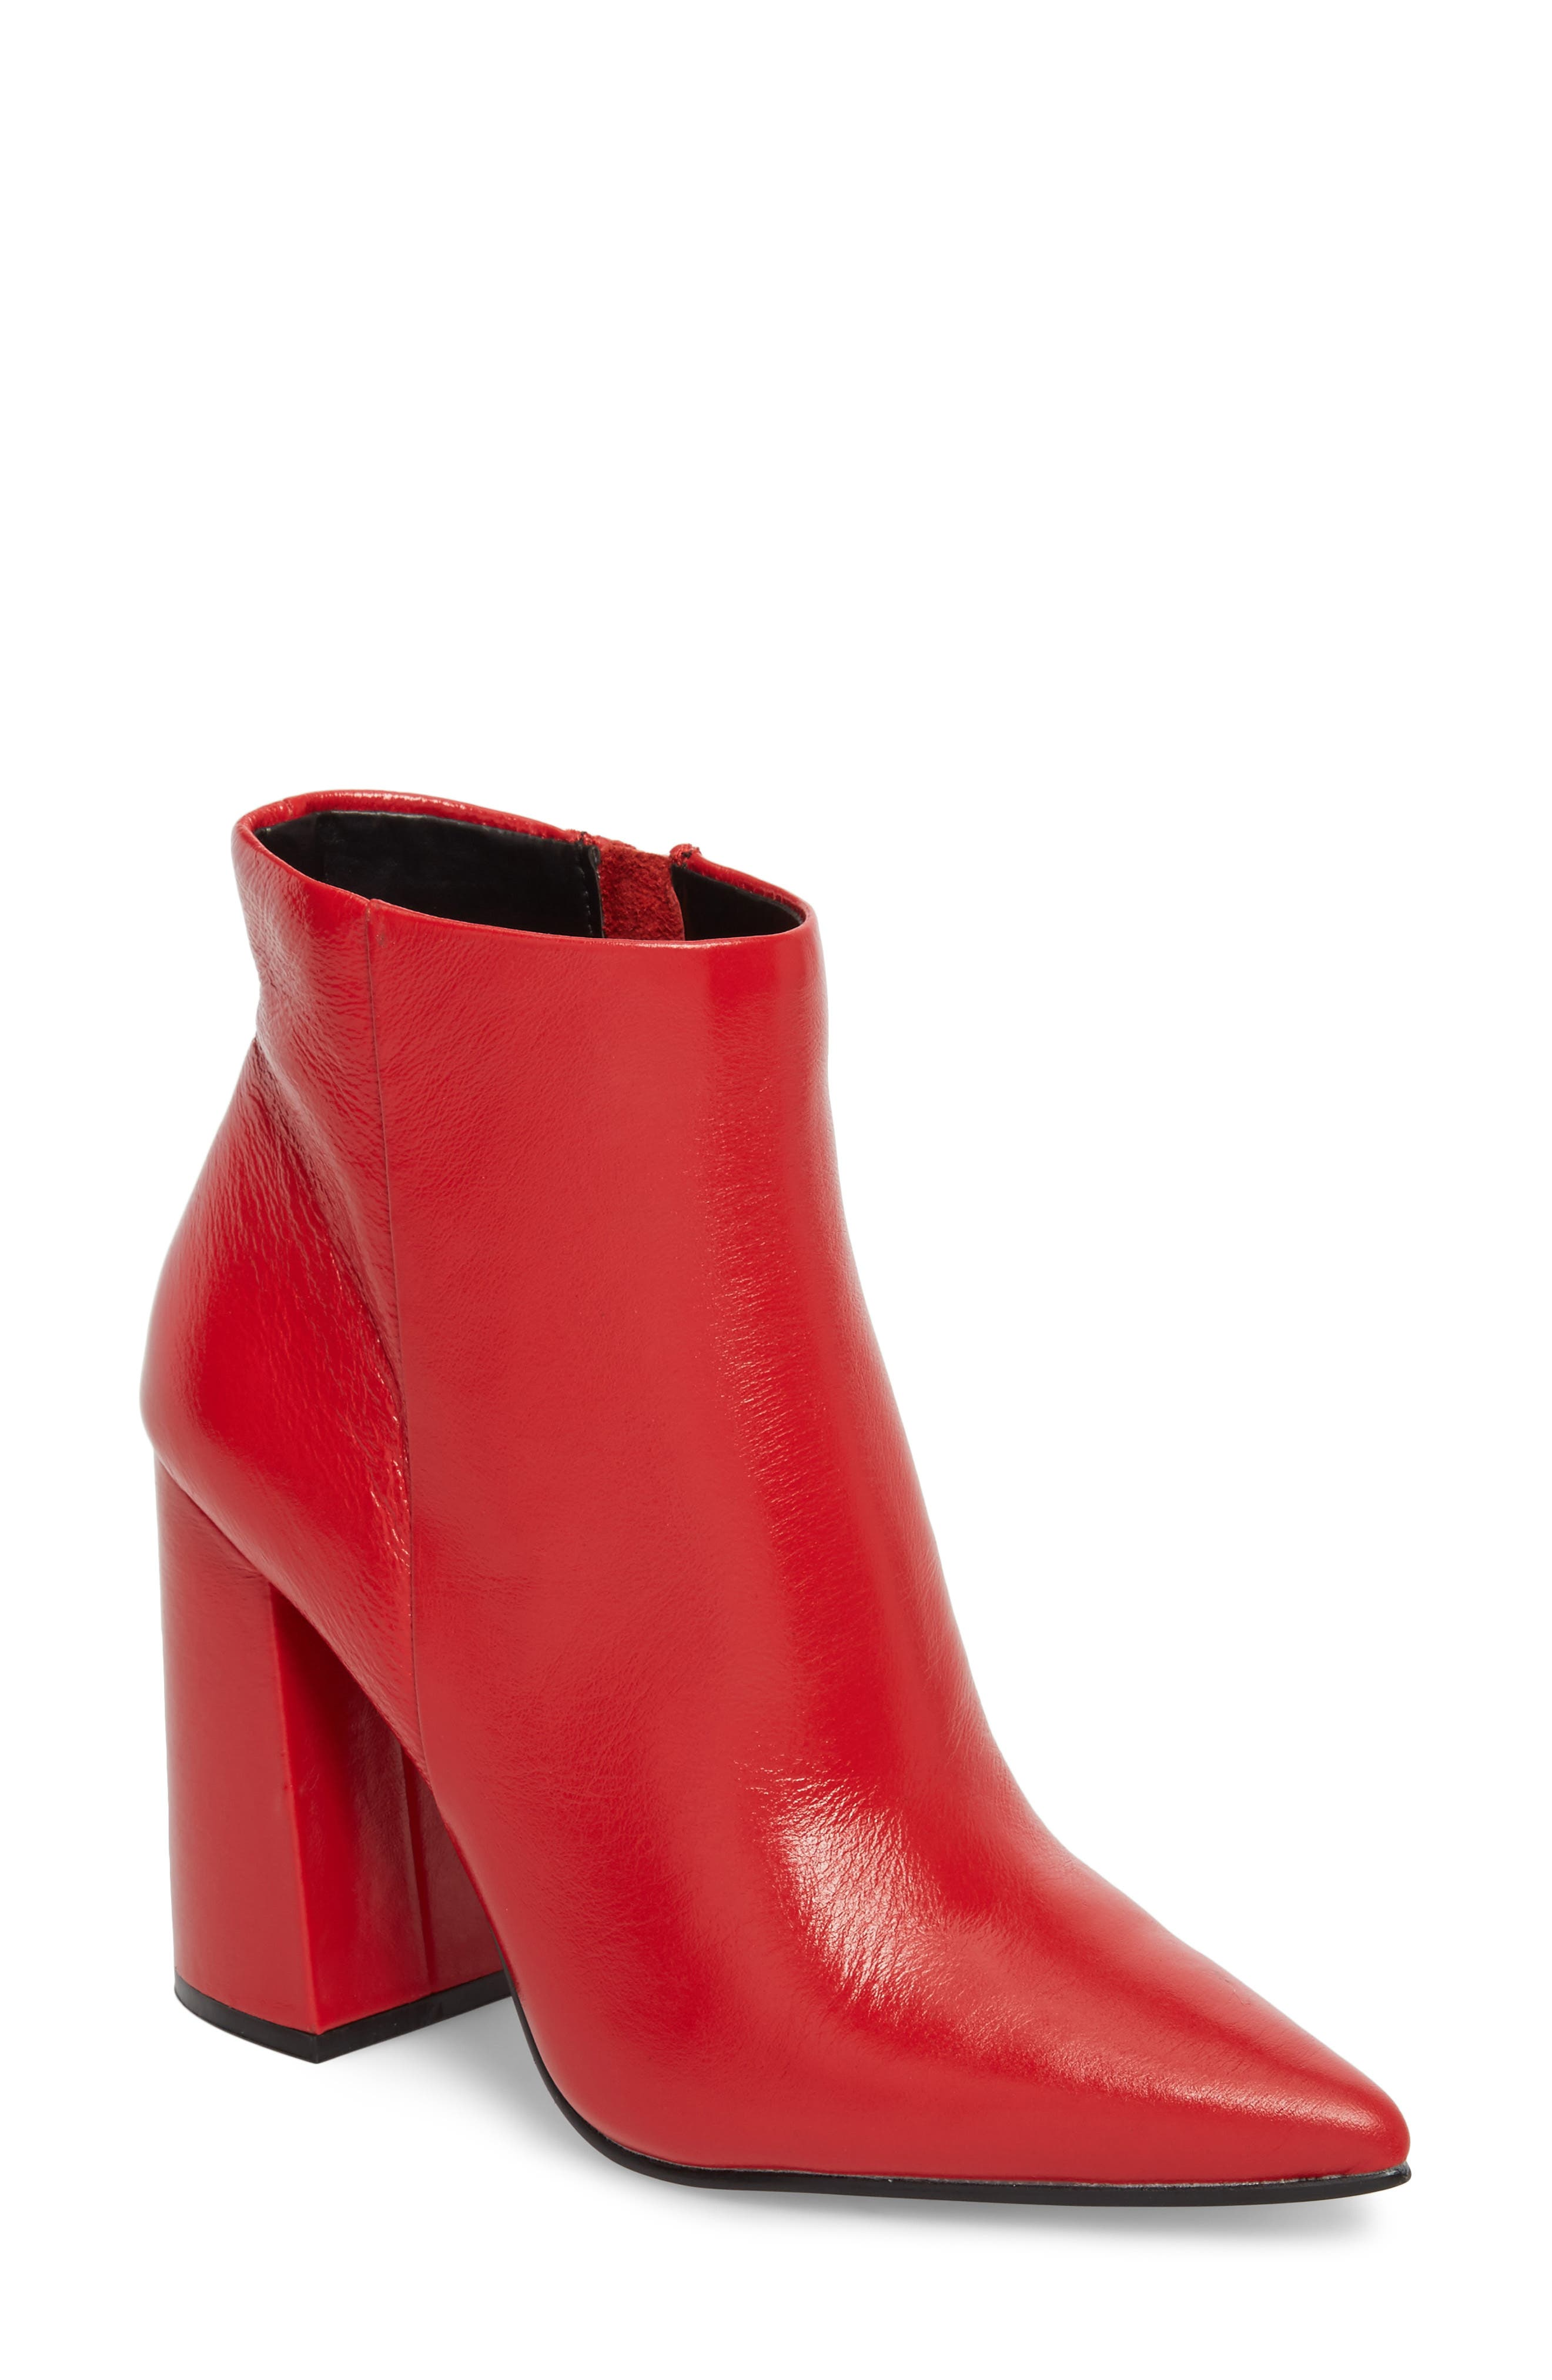 Justify Flared Heel Bootie,                         Main,                         color, Red Leather